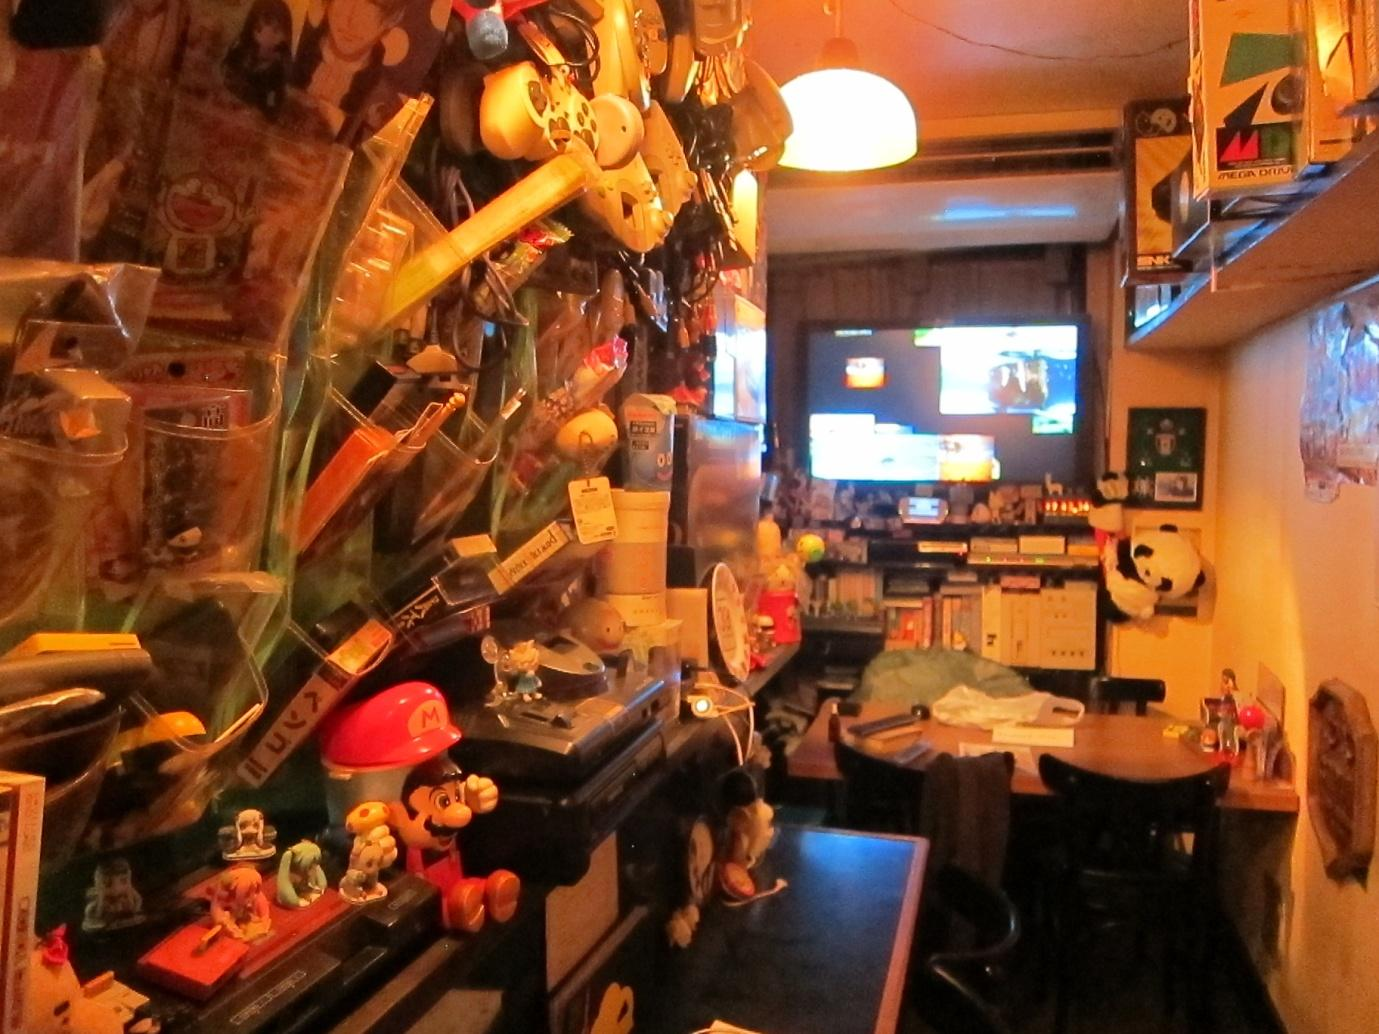 C:\Users\J\Pictures\TOKYO NOV 2016\GAMEBAR A BUTTON\IMG_0356.JPG